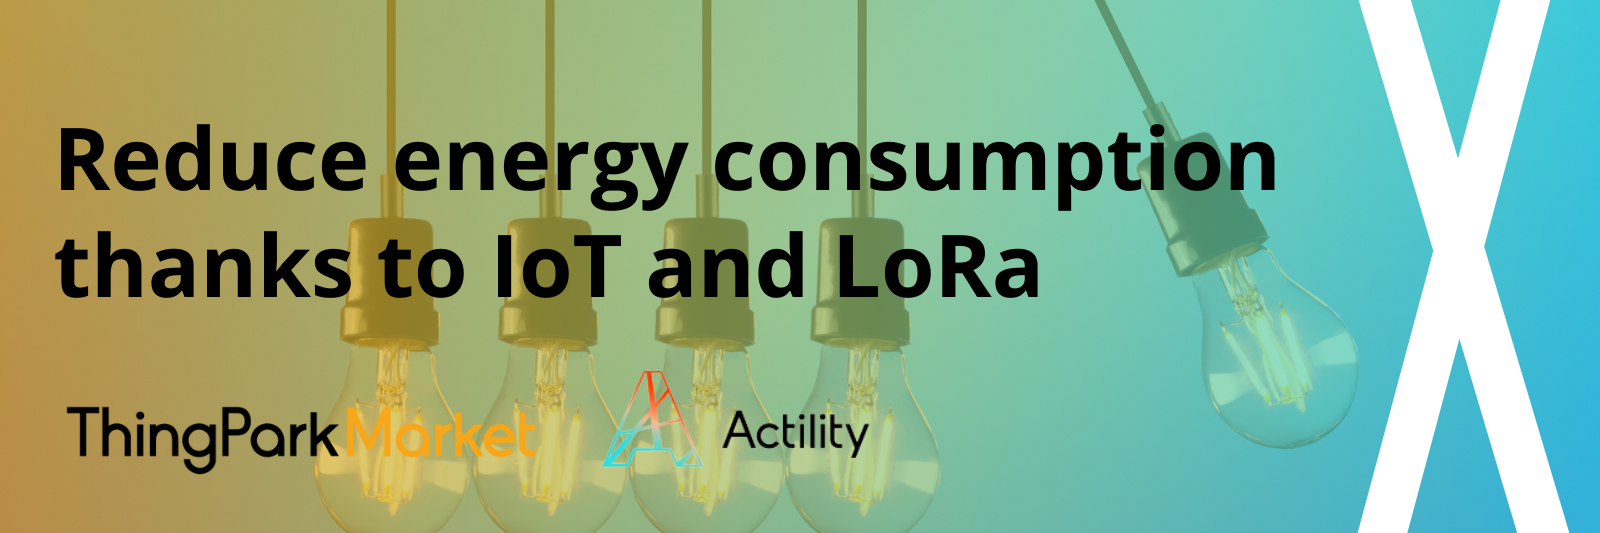 Reduce energy consumption thanks to IoT and LoRa